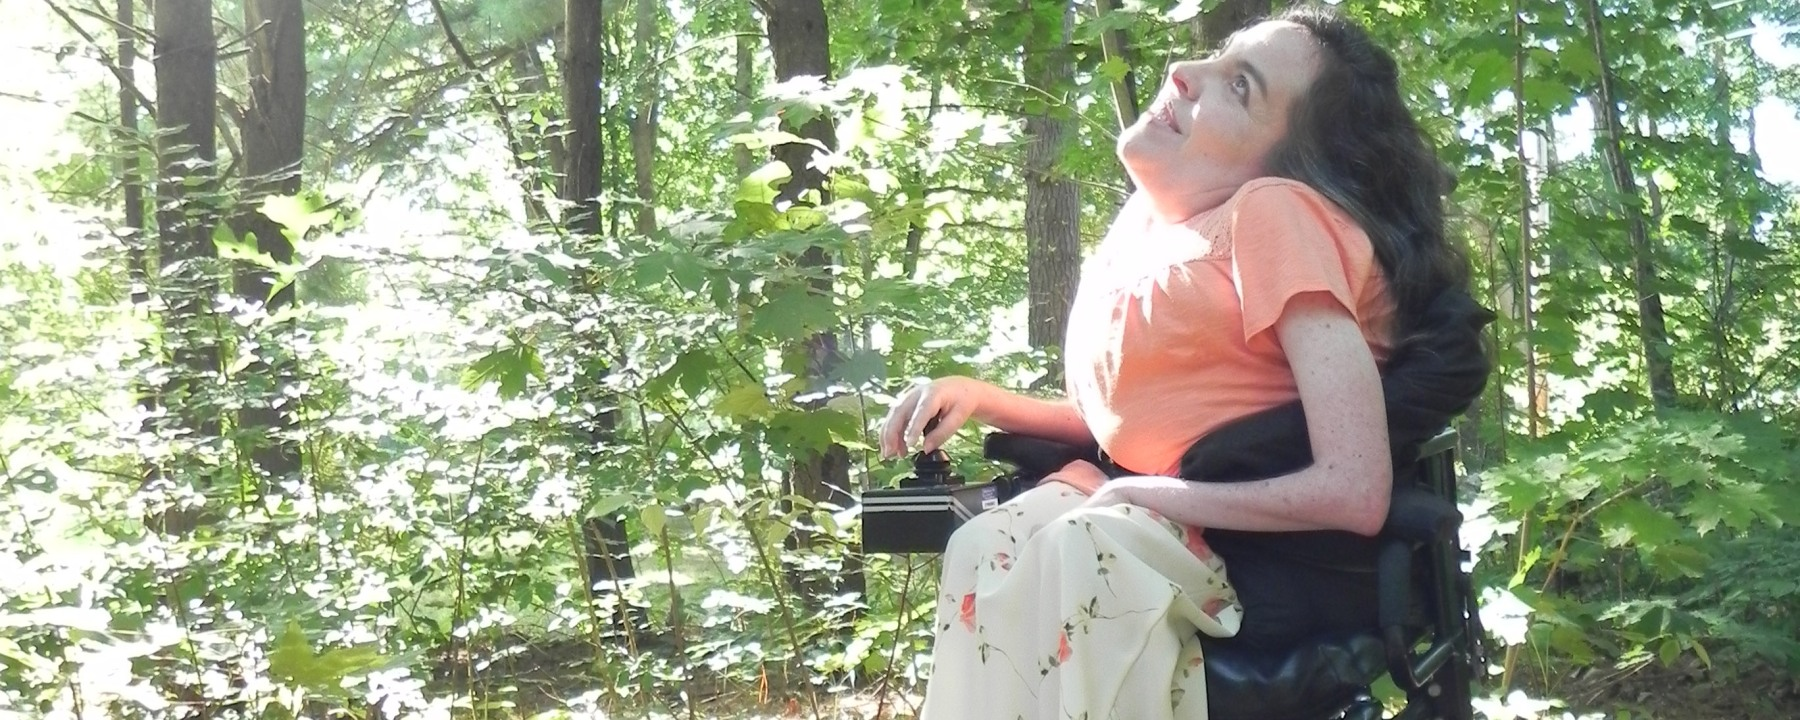 Christina Chase is disabled and enjoys nature in her wheelchair